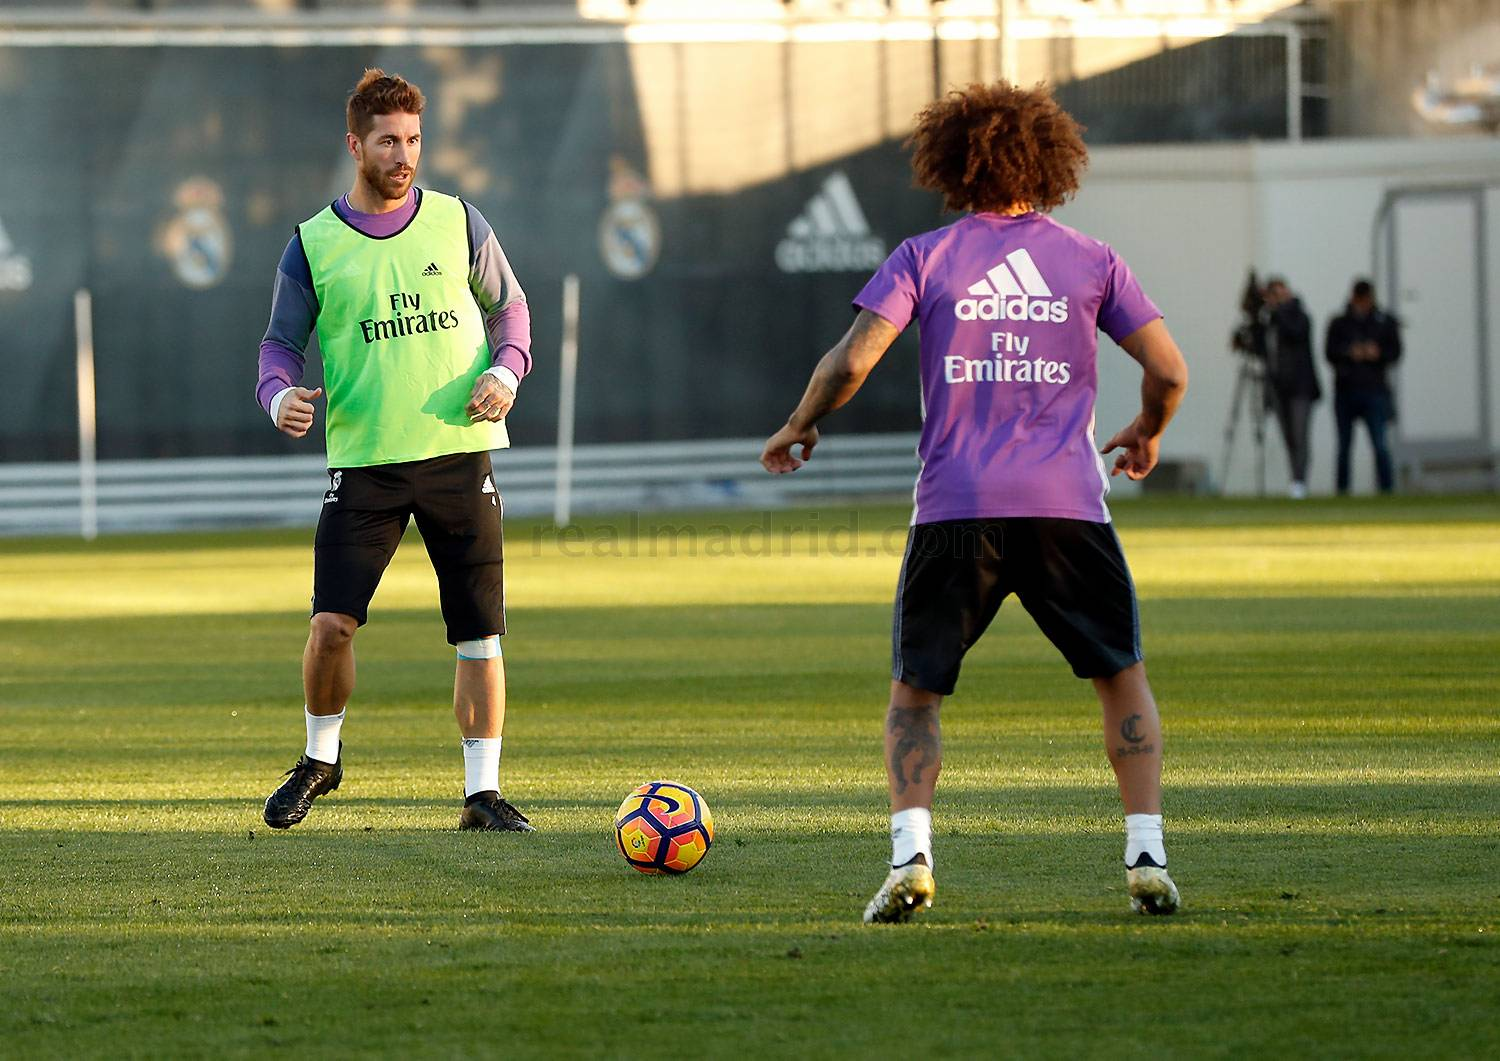 Real Madrid - Entrenamiento del Real Madrid - 16-11-2016